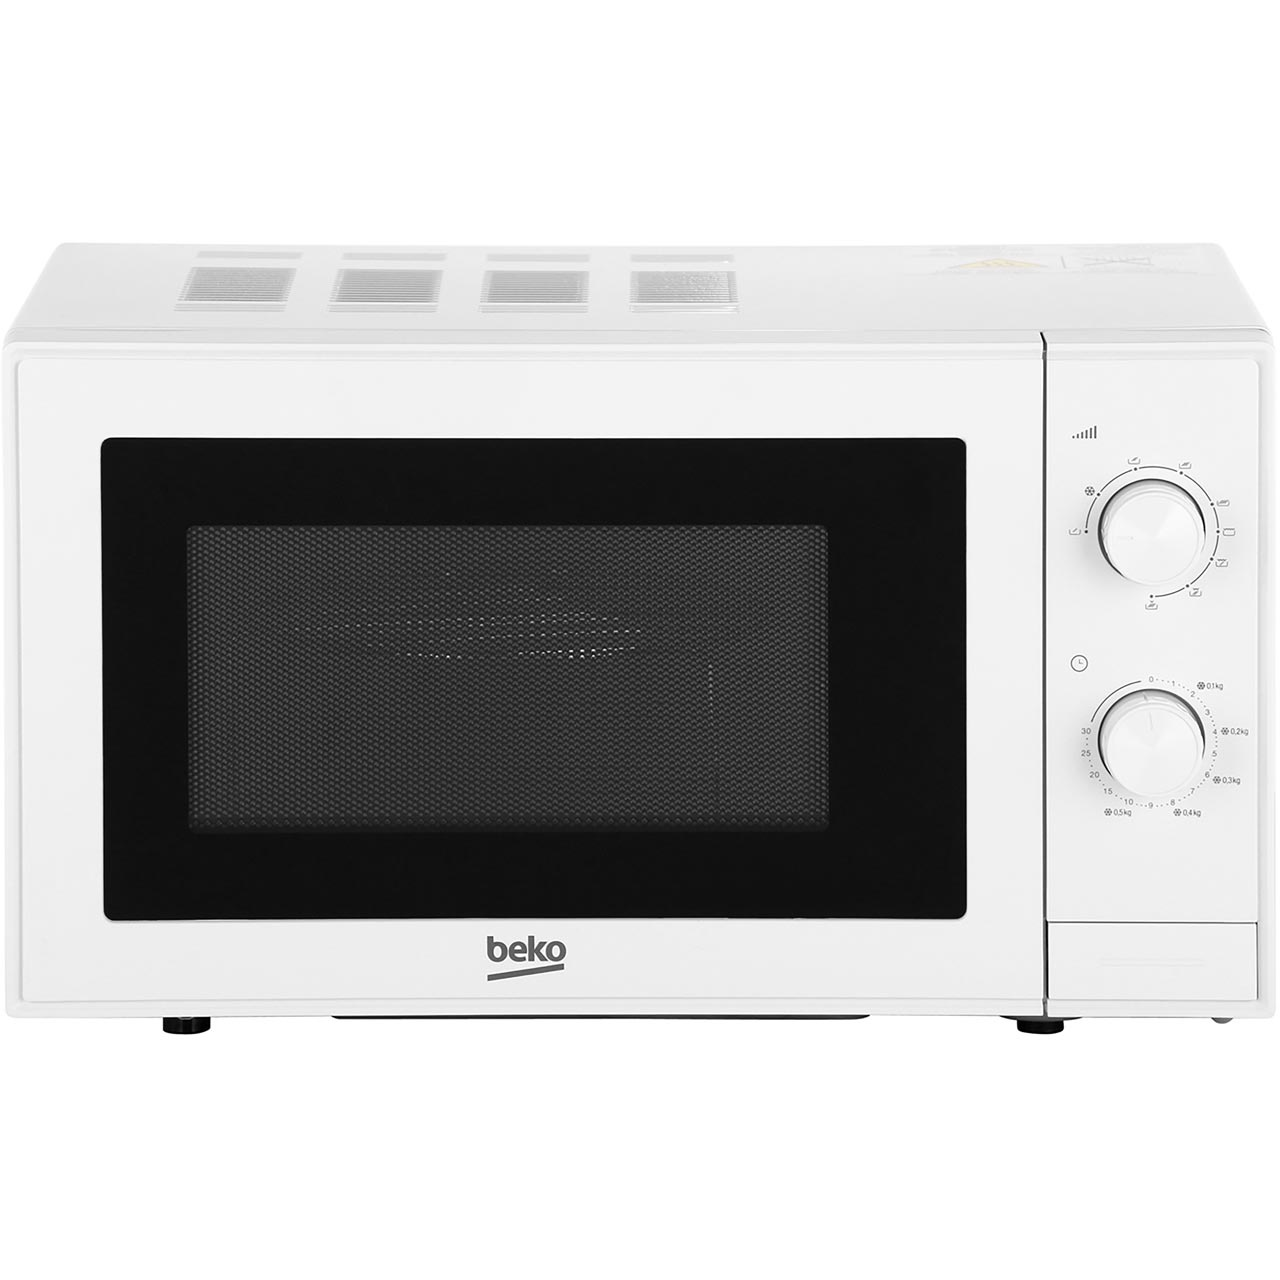 Beko 20 Litre Microwave With Grill